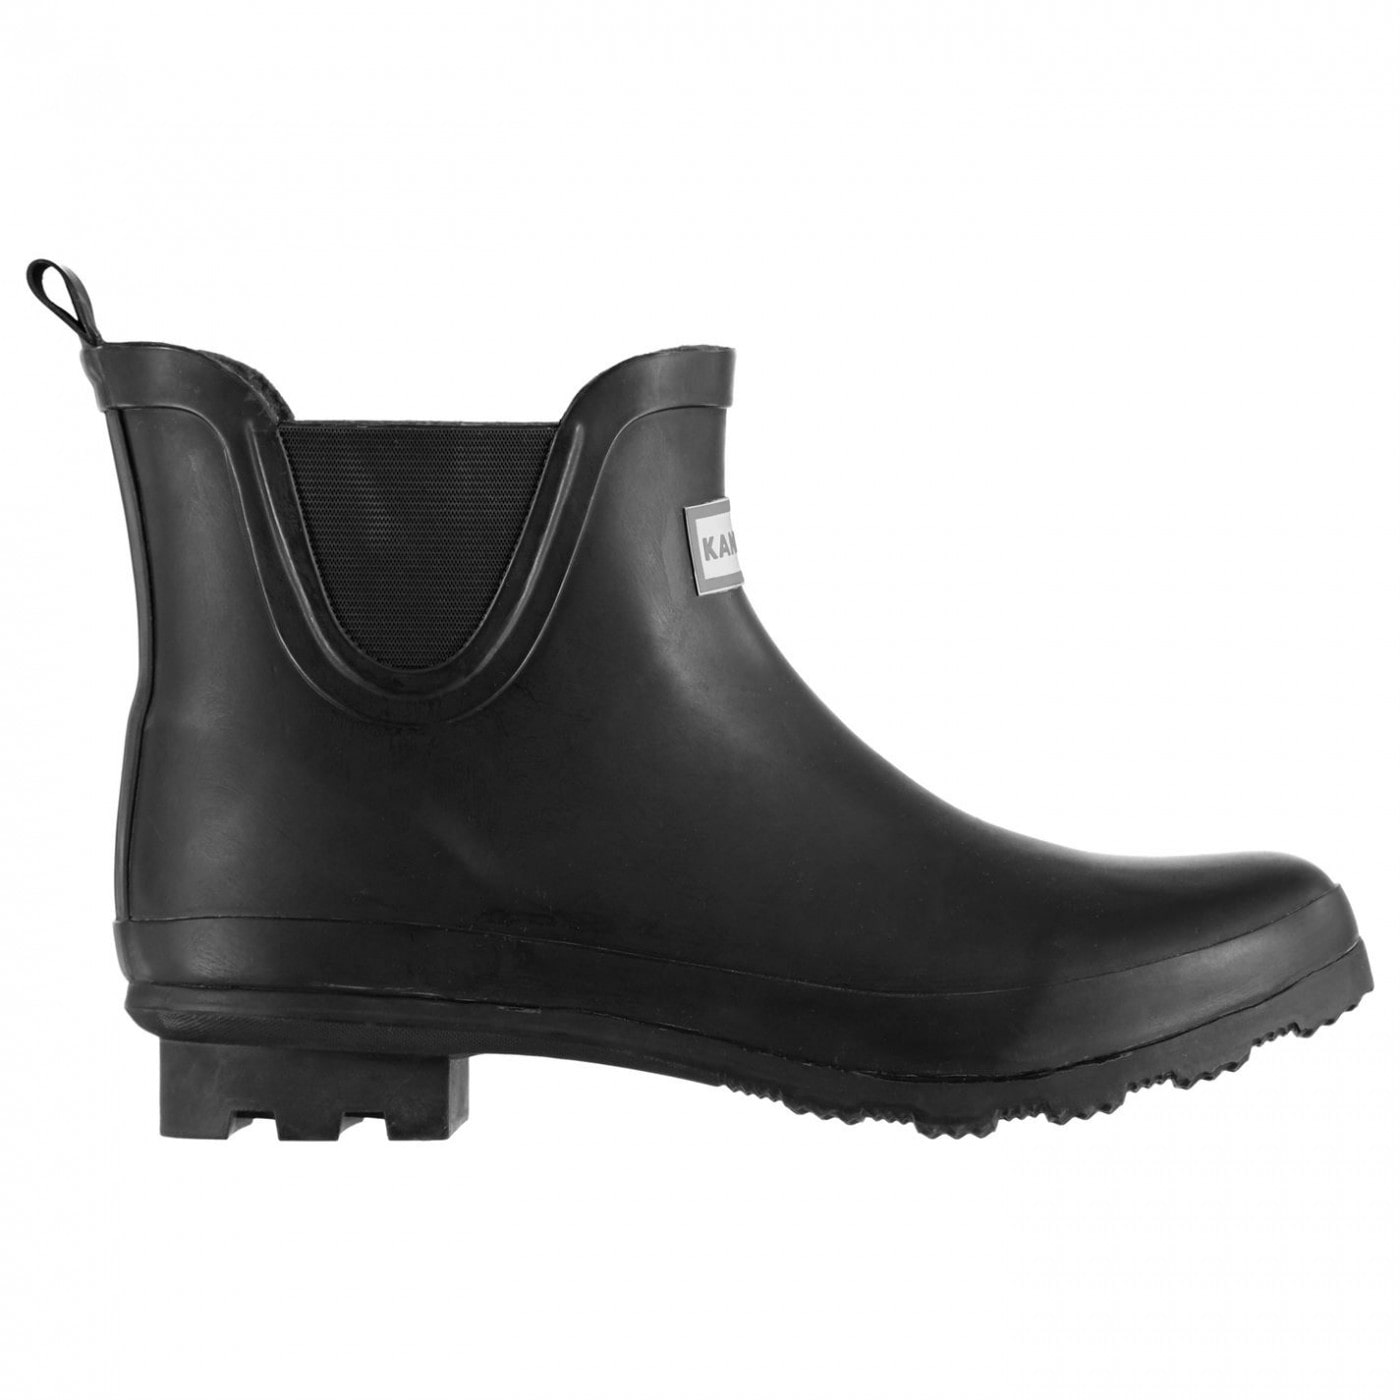 Kangol Short Welly Ld94